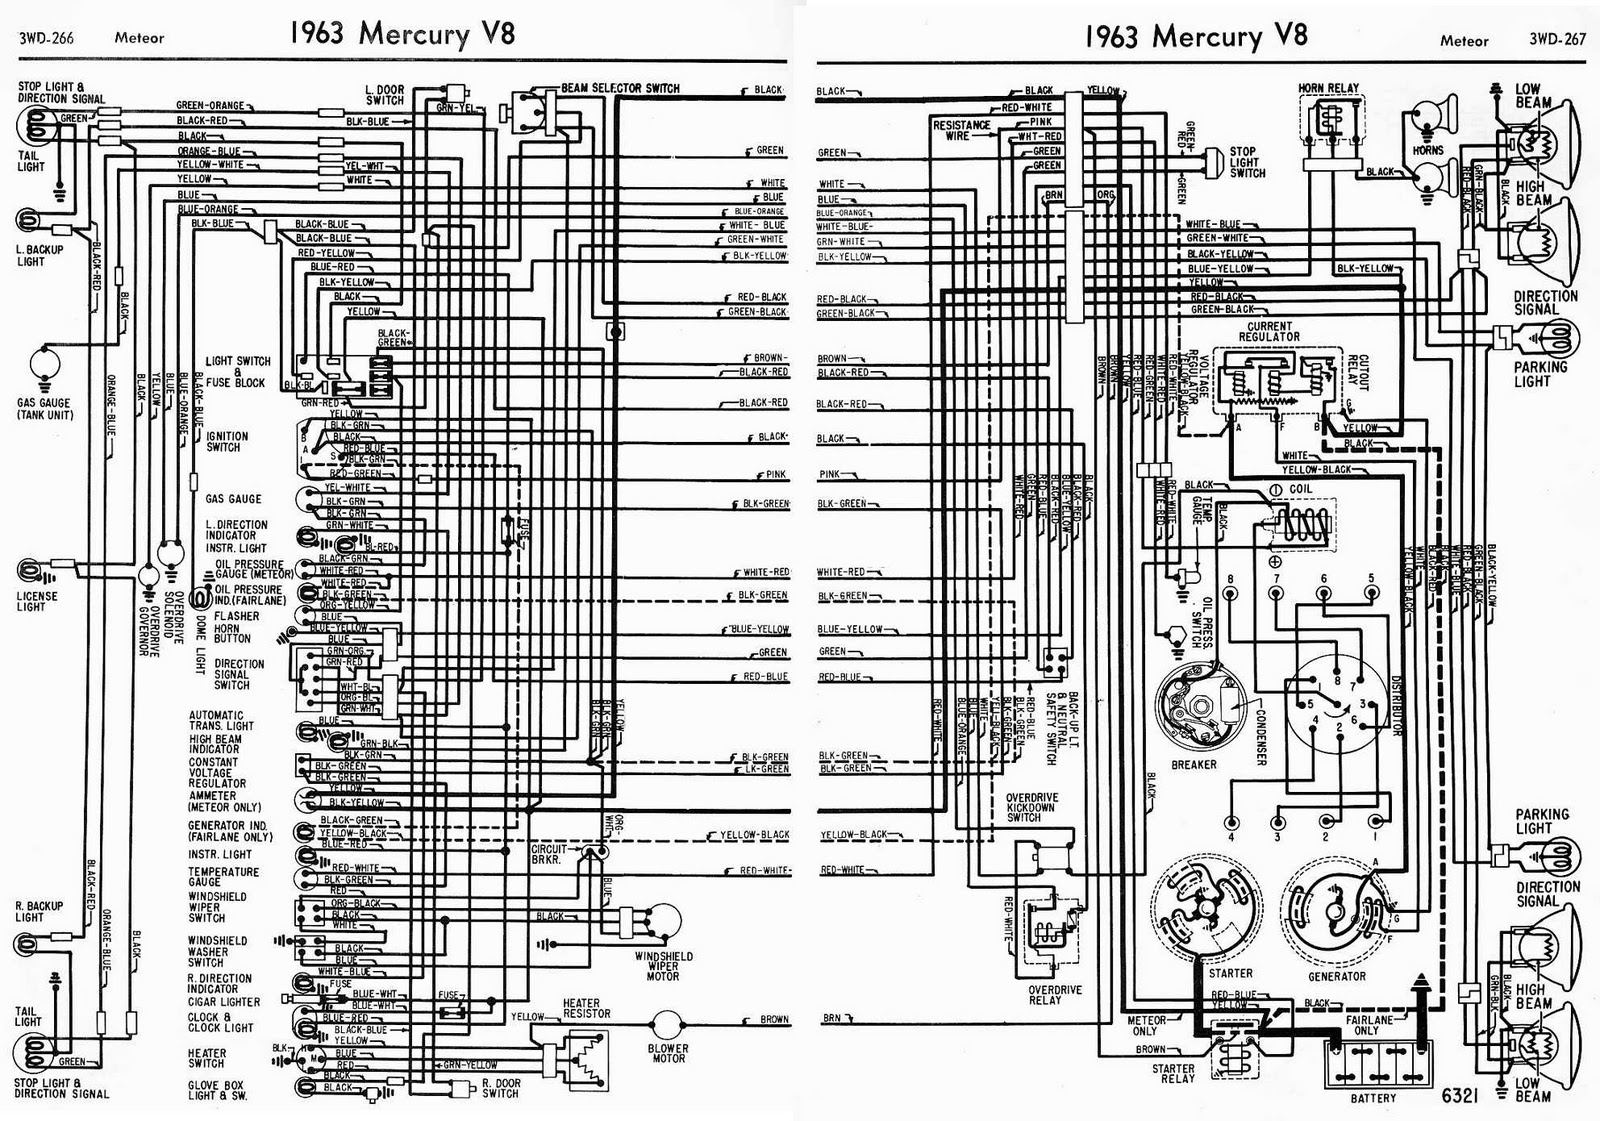 1963+Mercury+V8+Meteor+Complete+Wiring+Diagram wiring diagrams 911 1963 ford galaxie fuse box diagram at soozxer.org